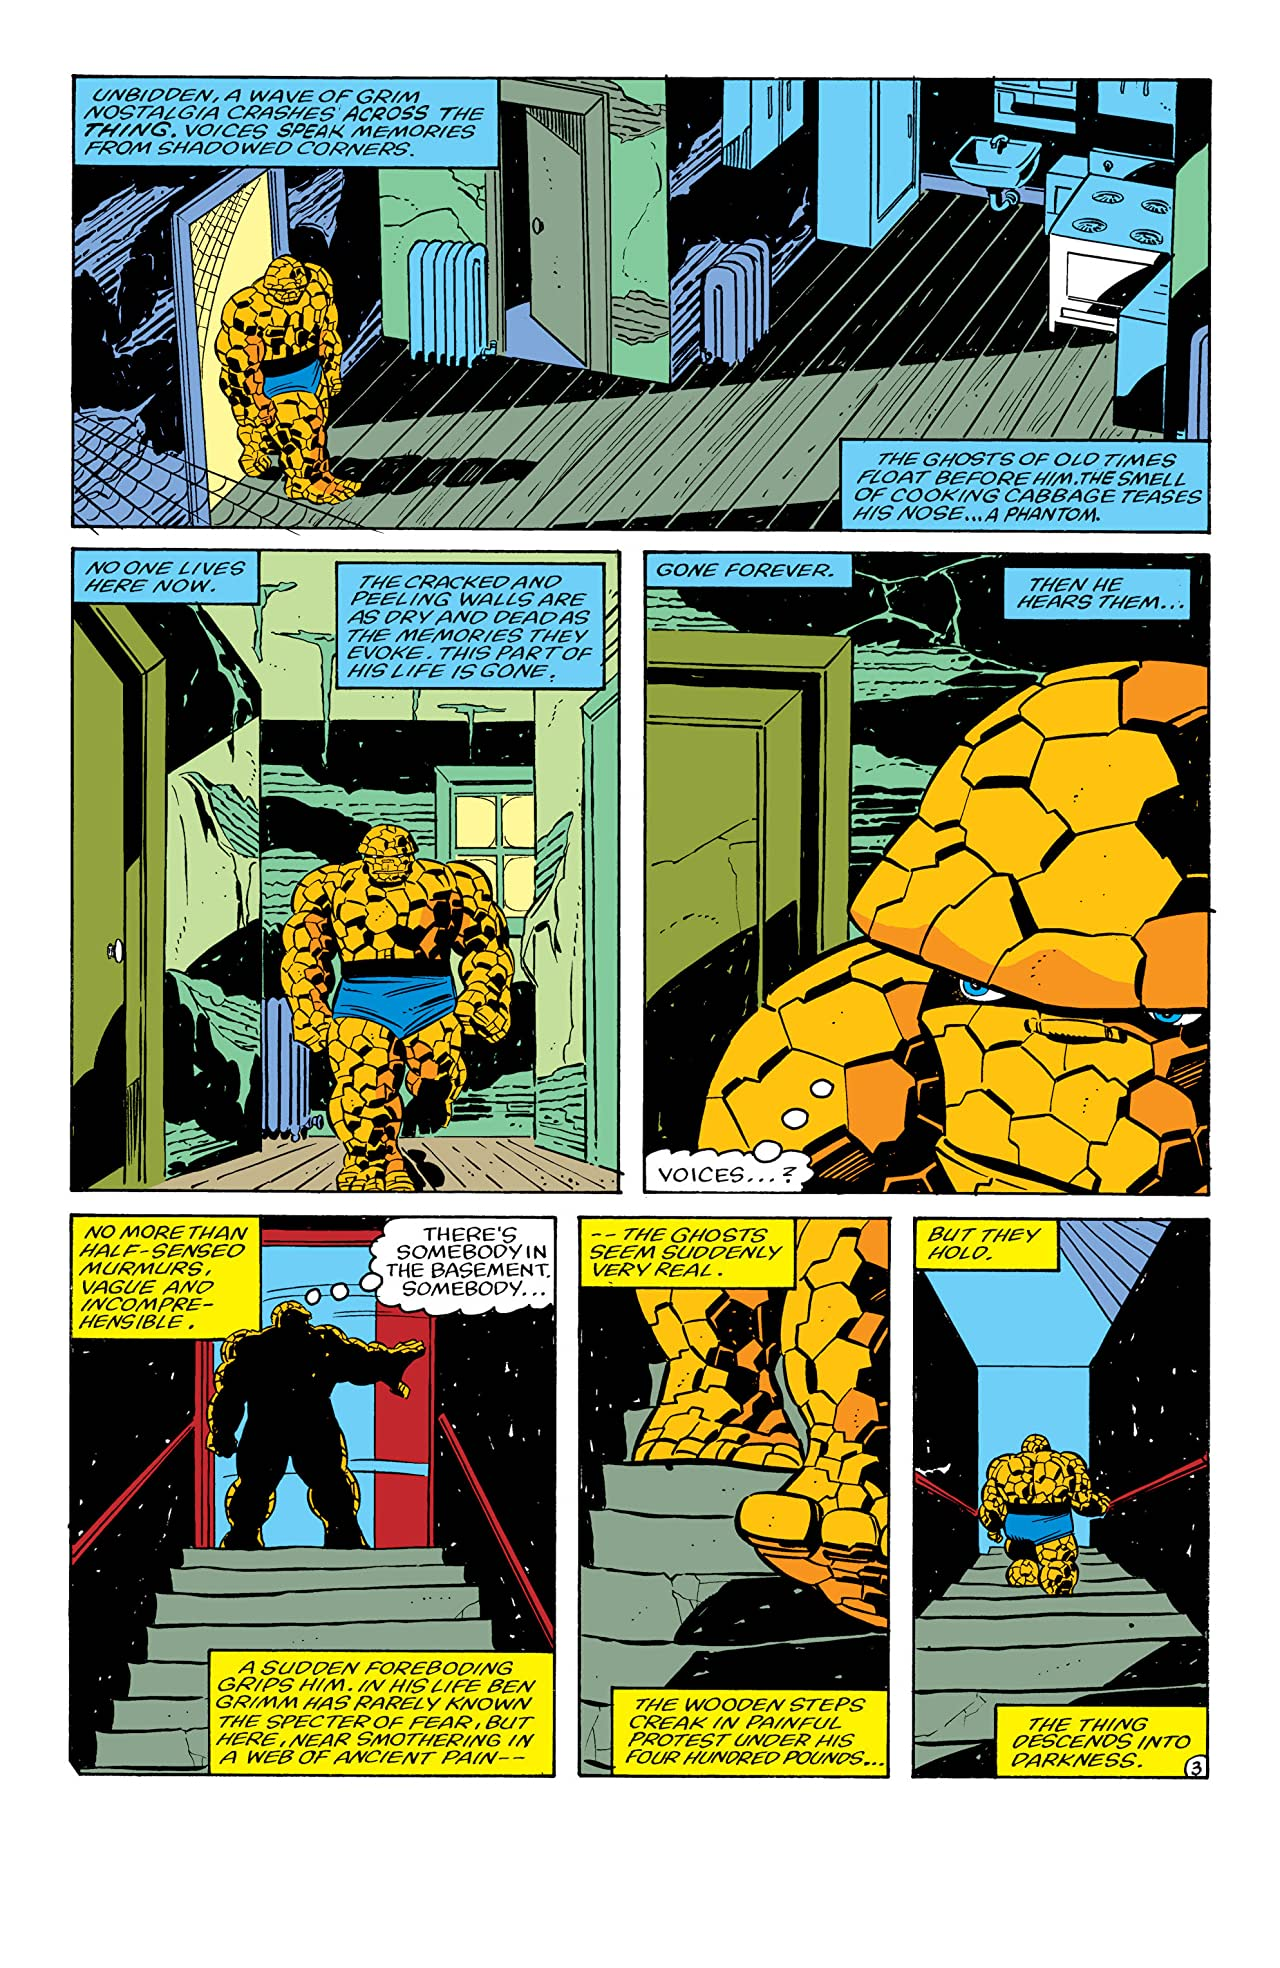 The Thing (1983-1986) #1